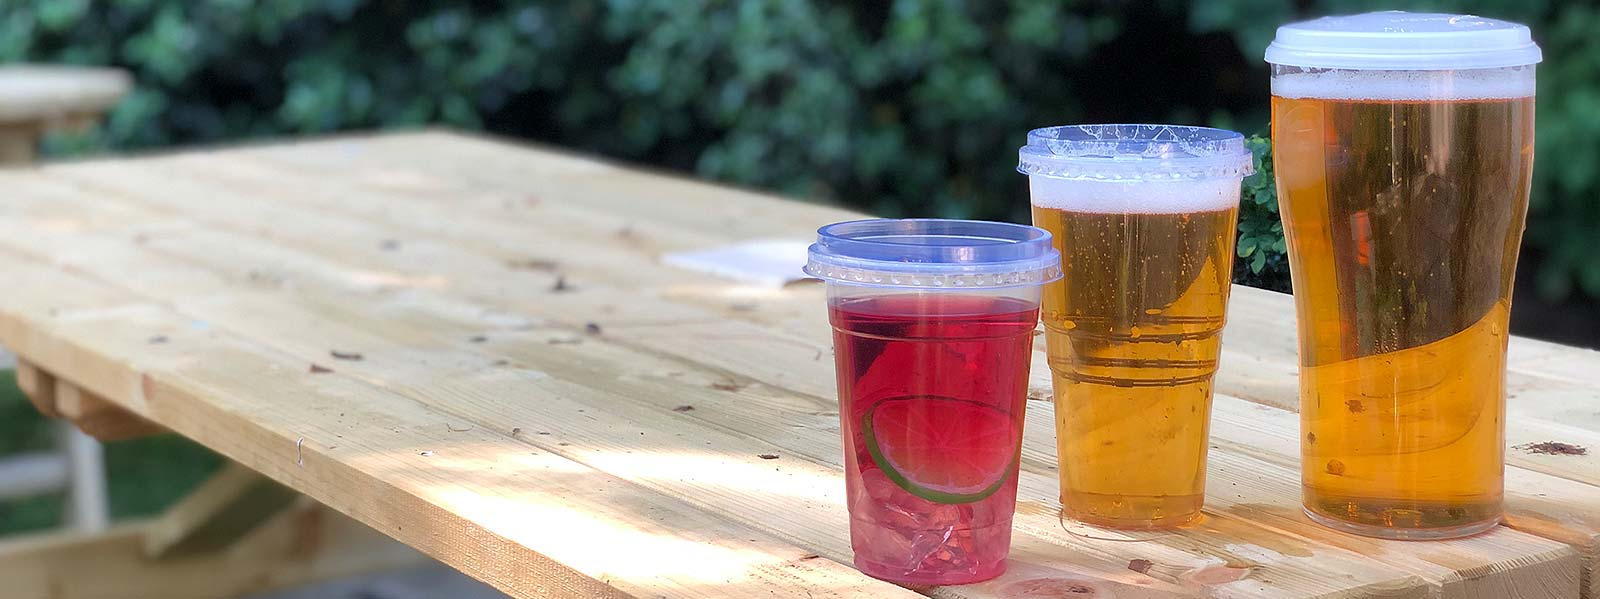 Plastic Beer Glasses with Lids